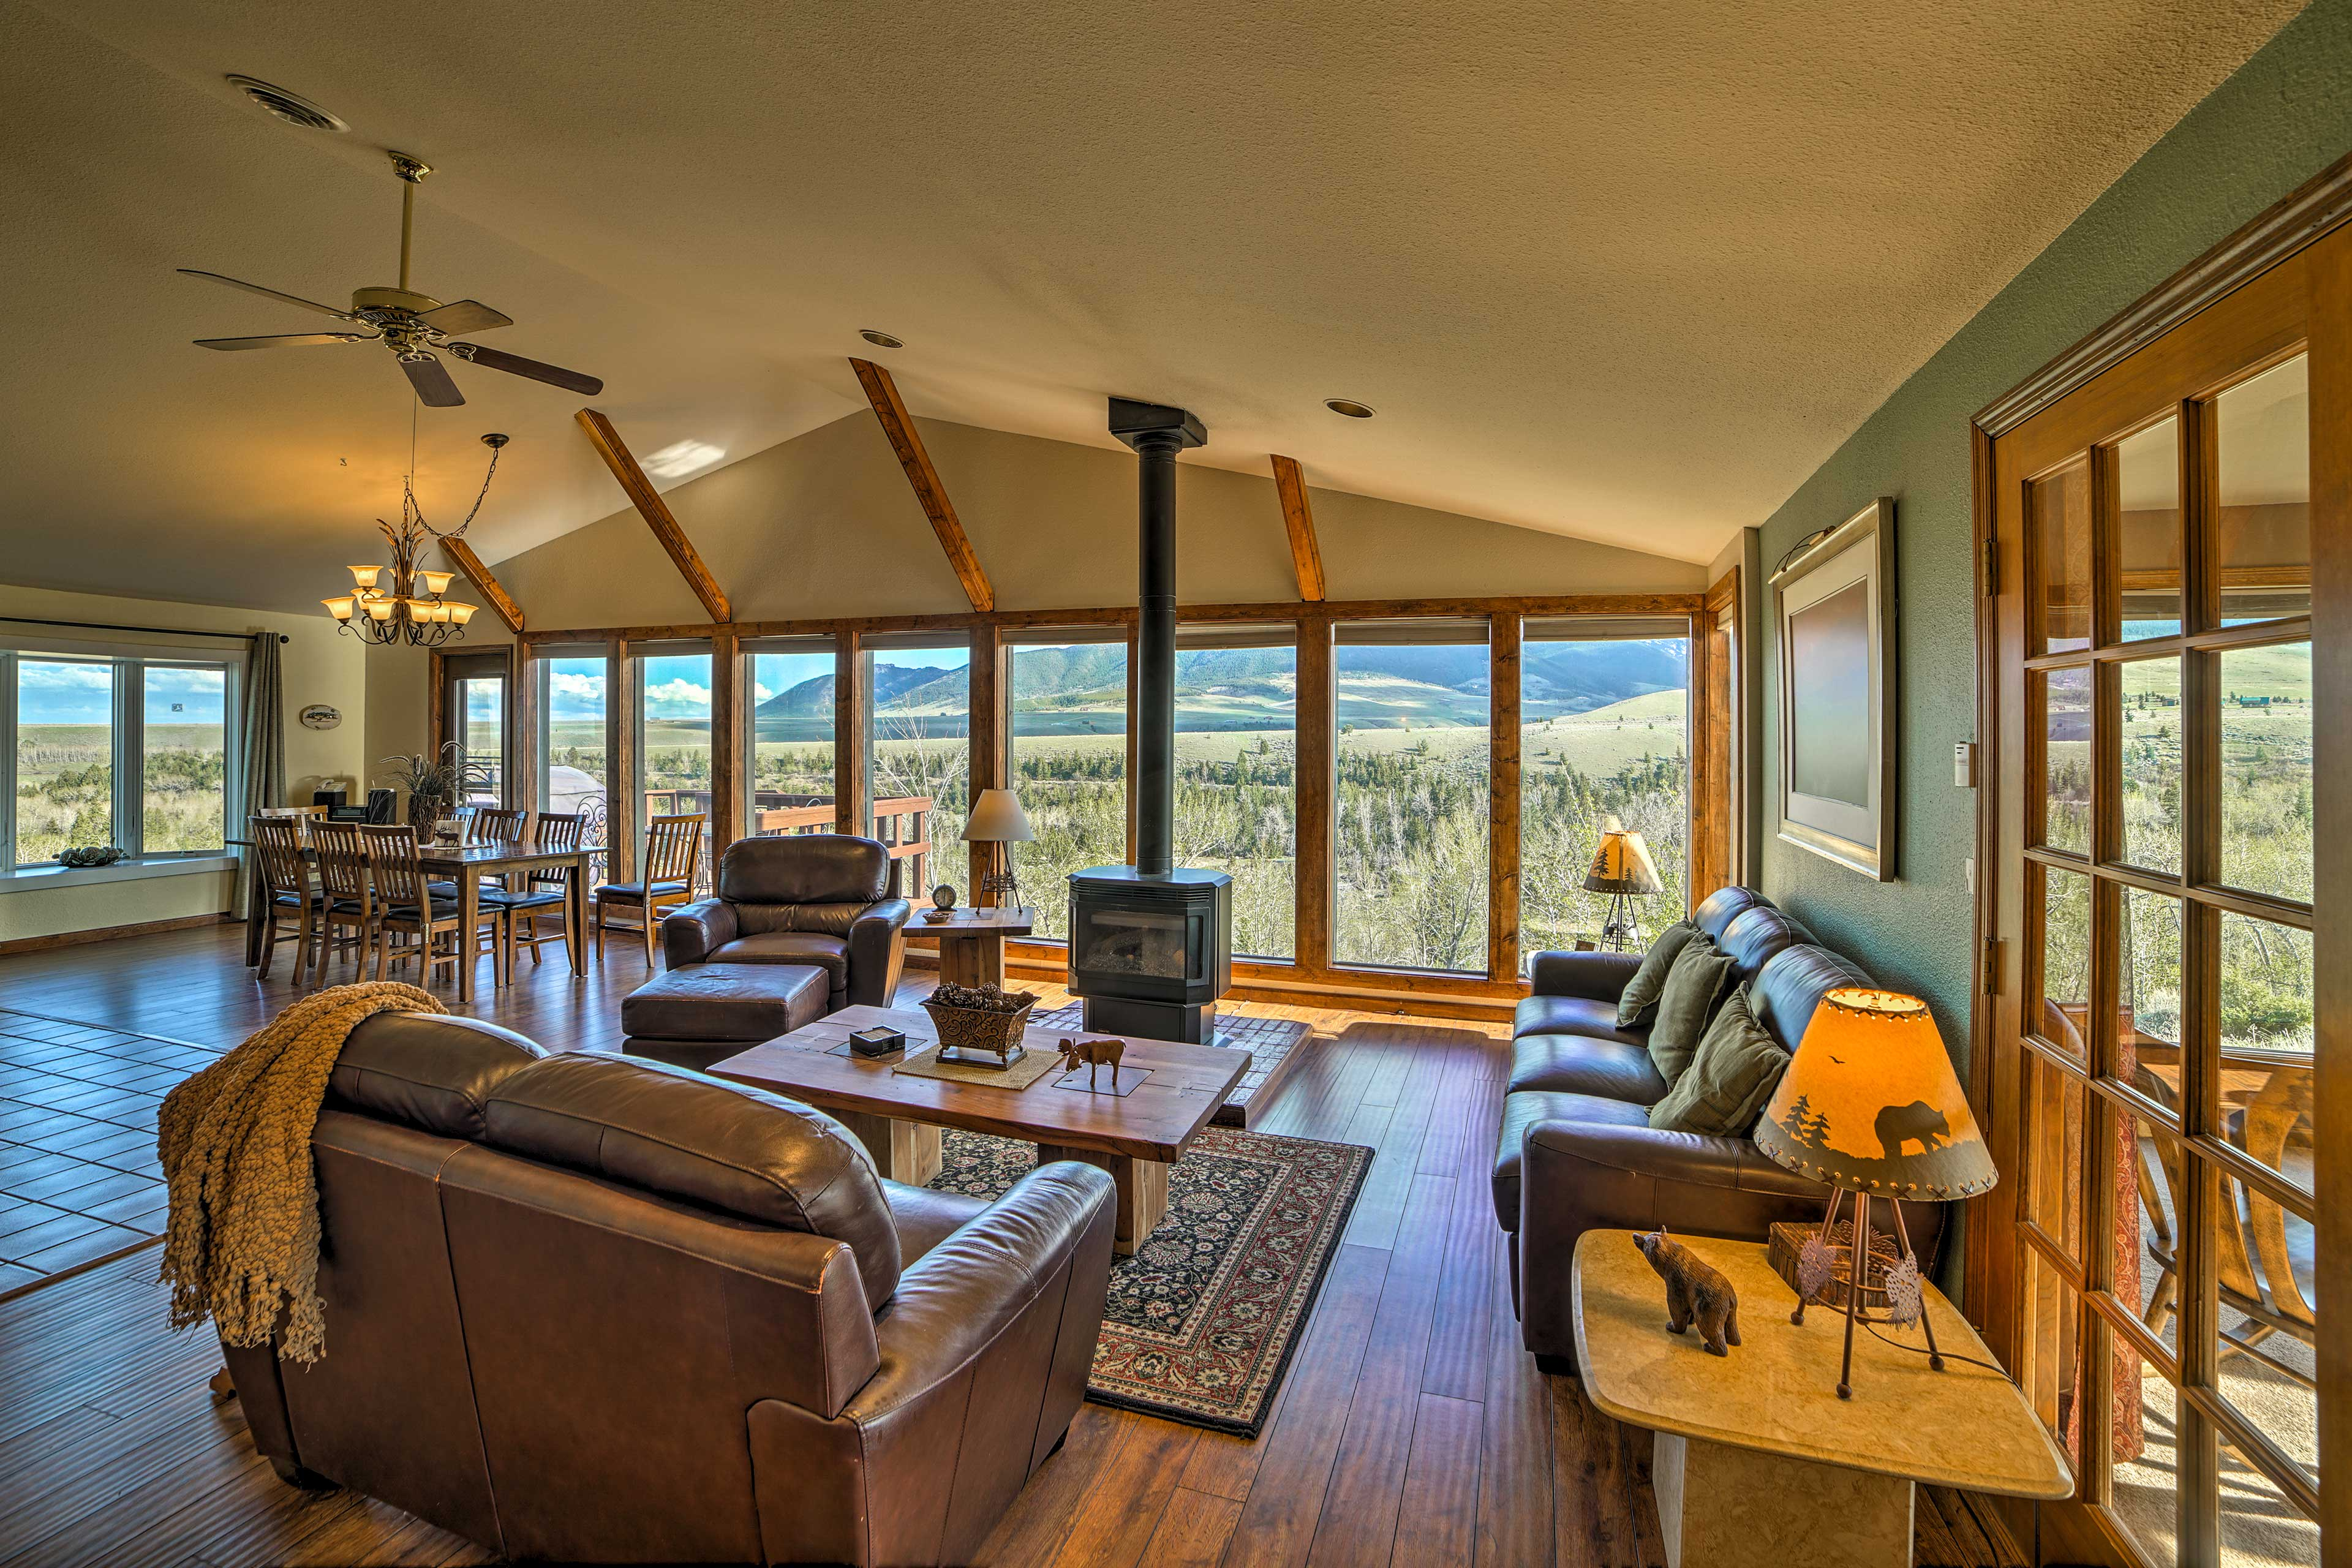 Red Lodge Vacation Rental   Home   3BR   2.5BA   2,100 Sq Ft   Steps Required